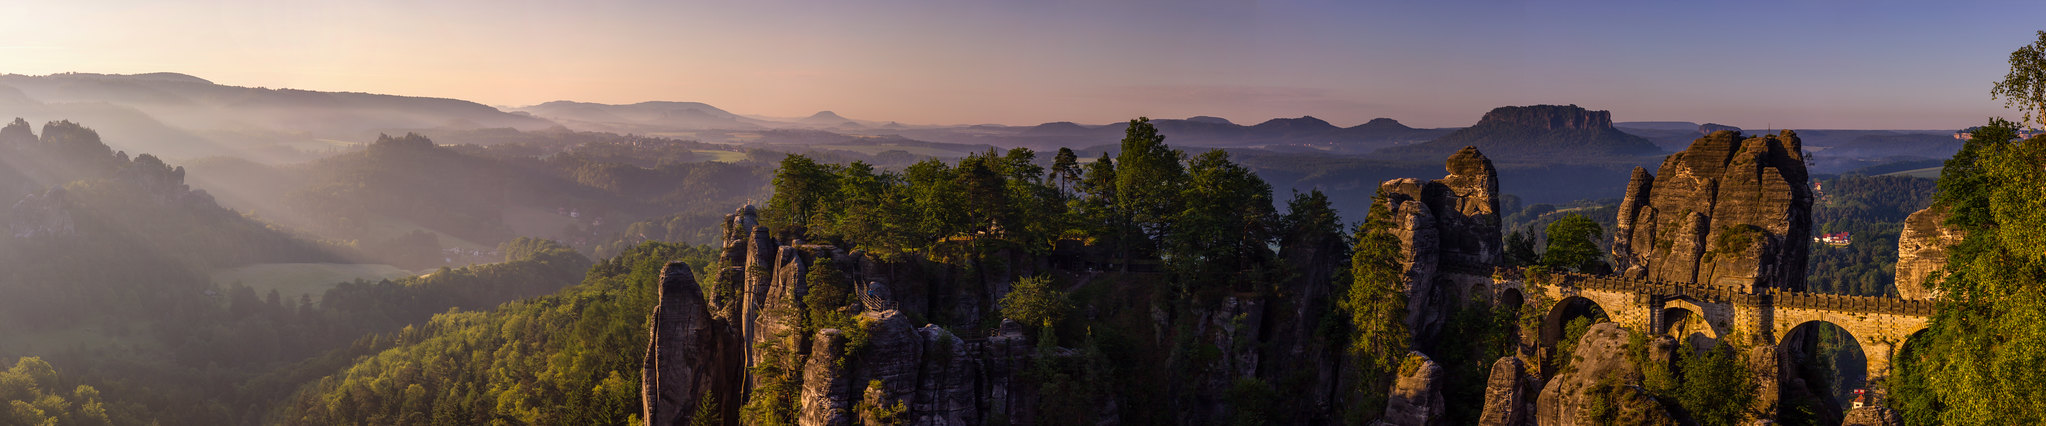 Bastei shortly after sunrise